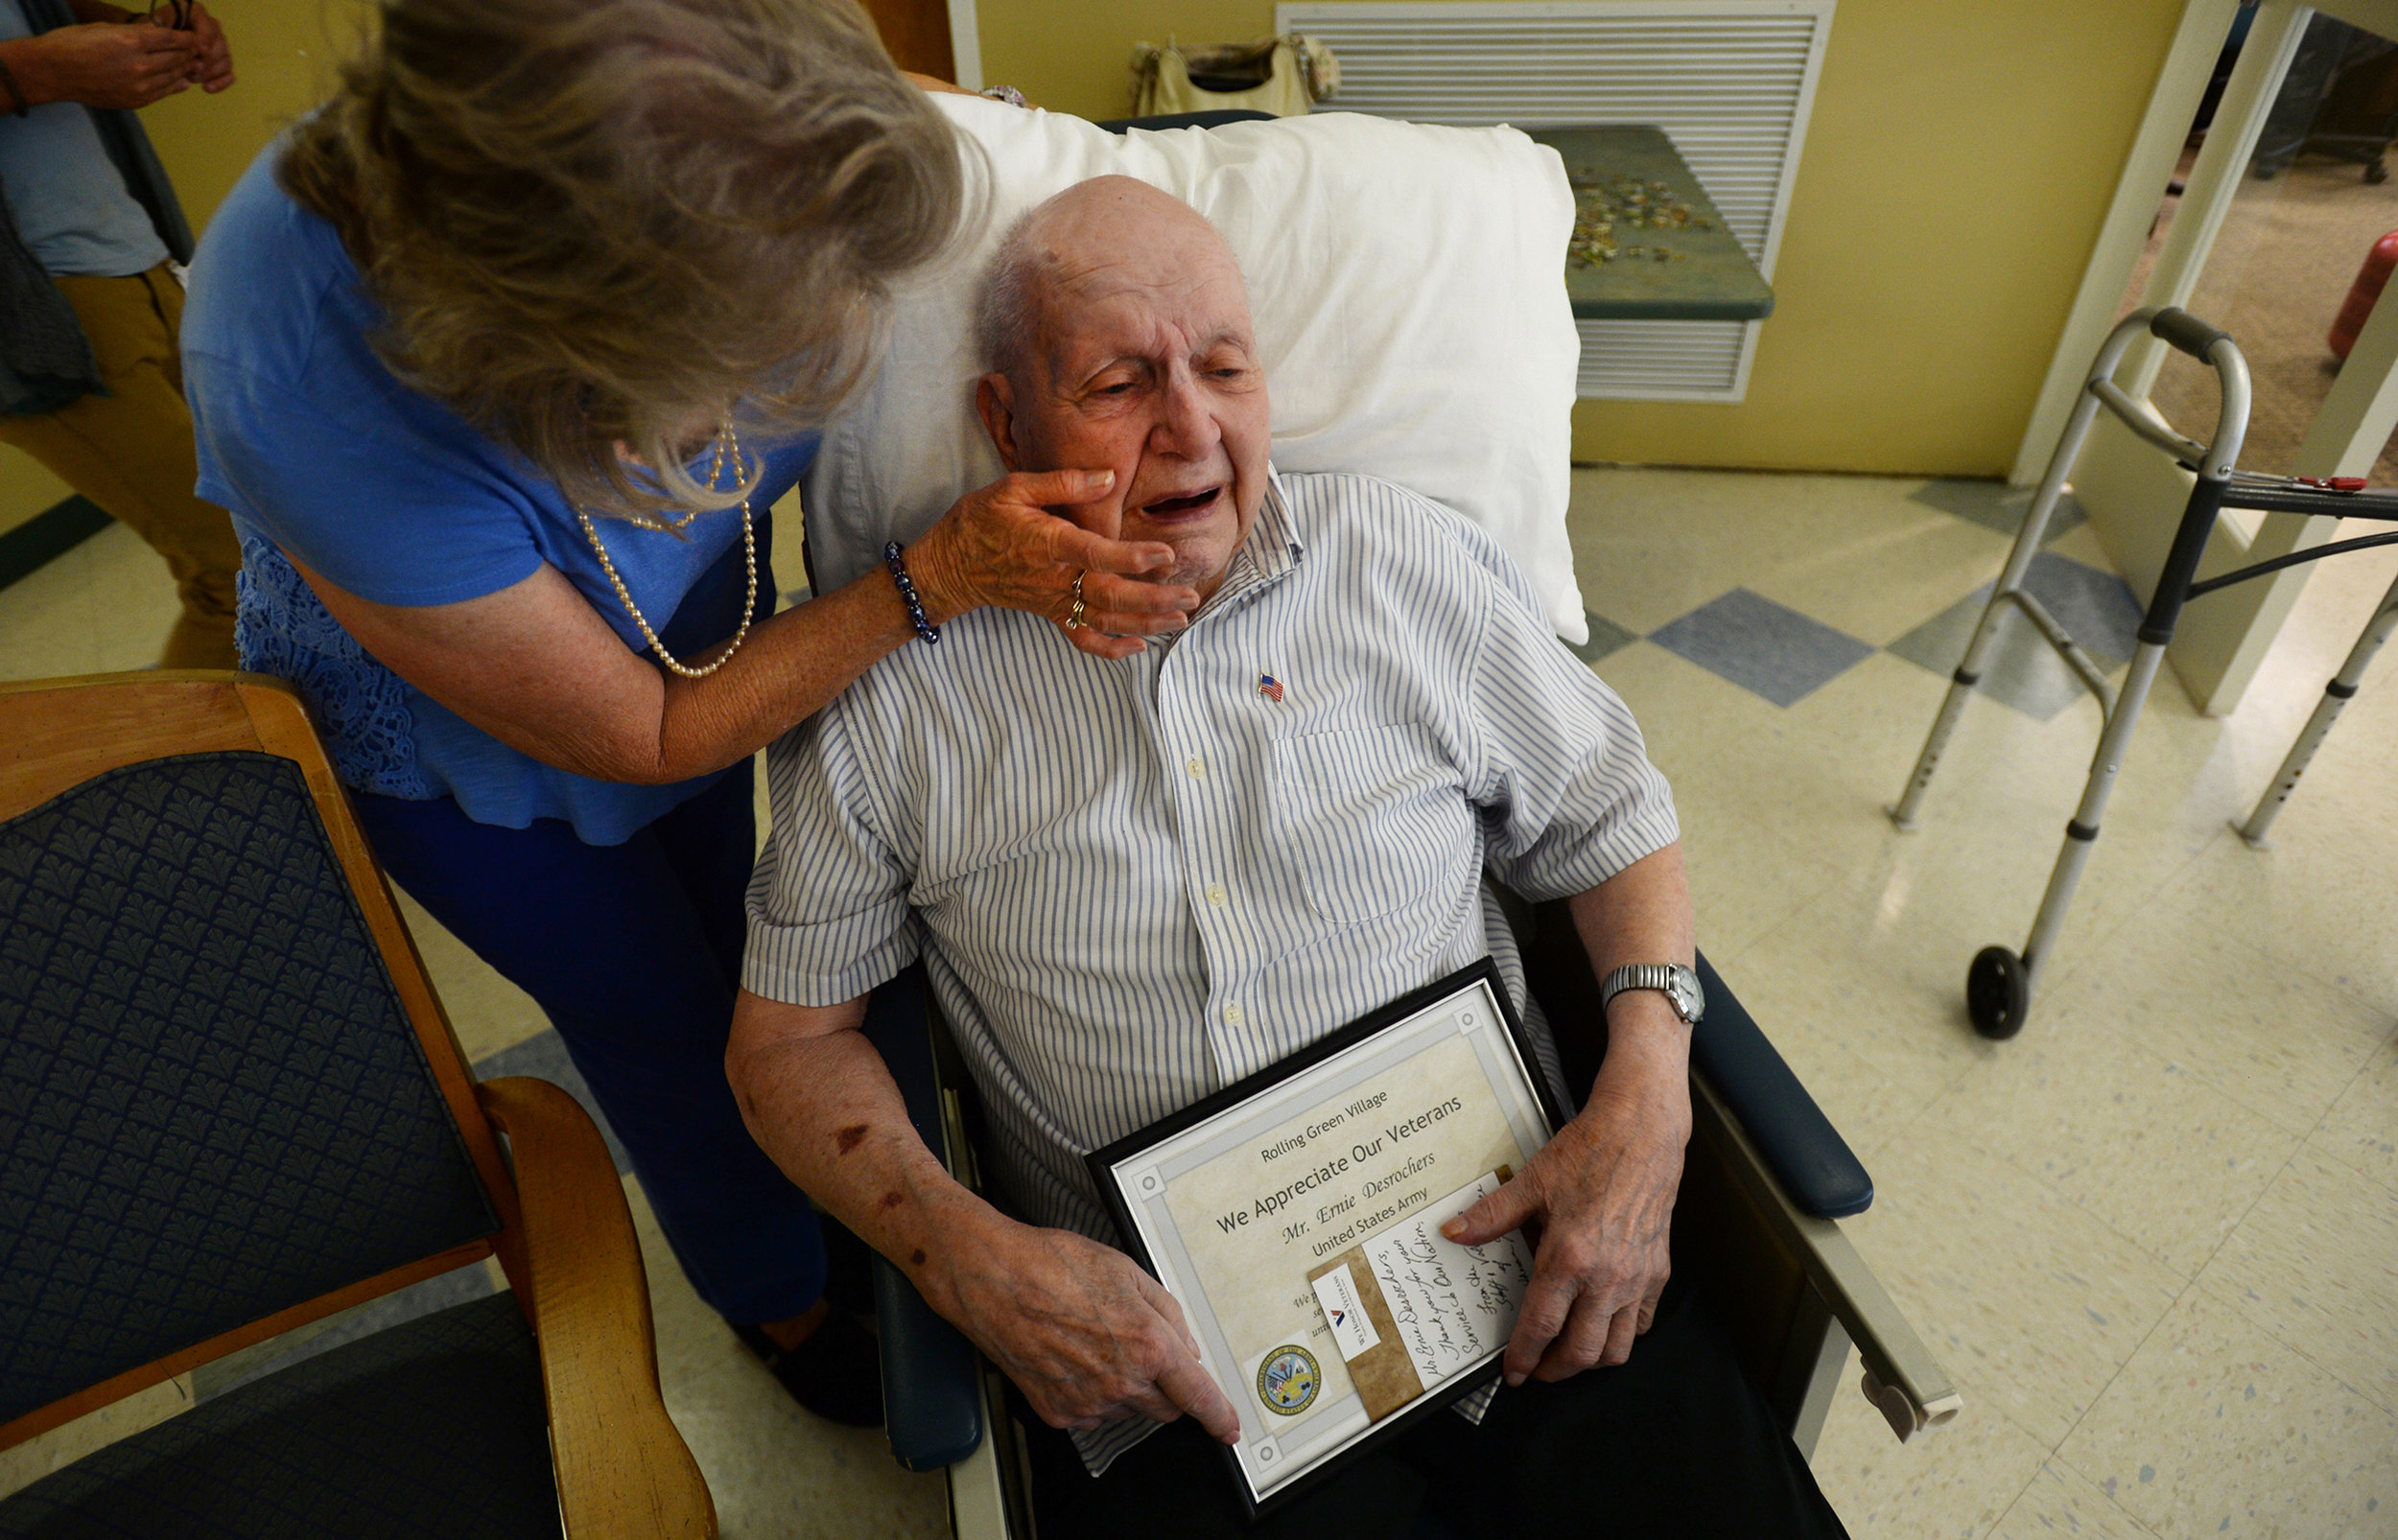 Carol Cole, left, congratulates her friend and Army veteran Ernie Desrochers after he received a certificate of appreciation and an American flag pin from Lutheran Hospice at Rolling Green Village on Tuesday.